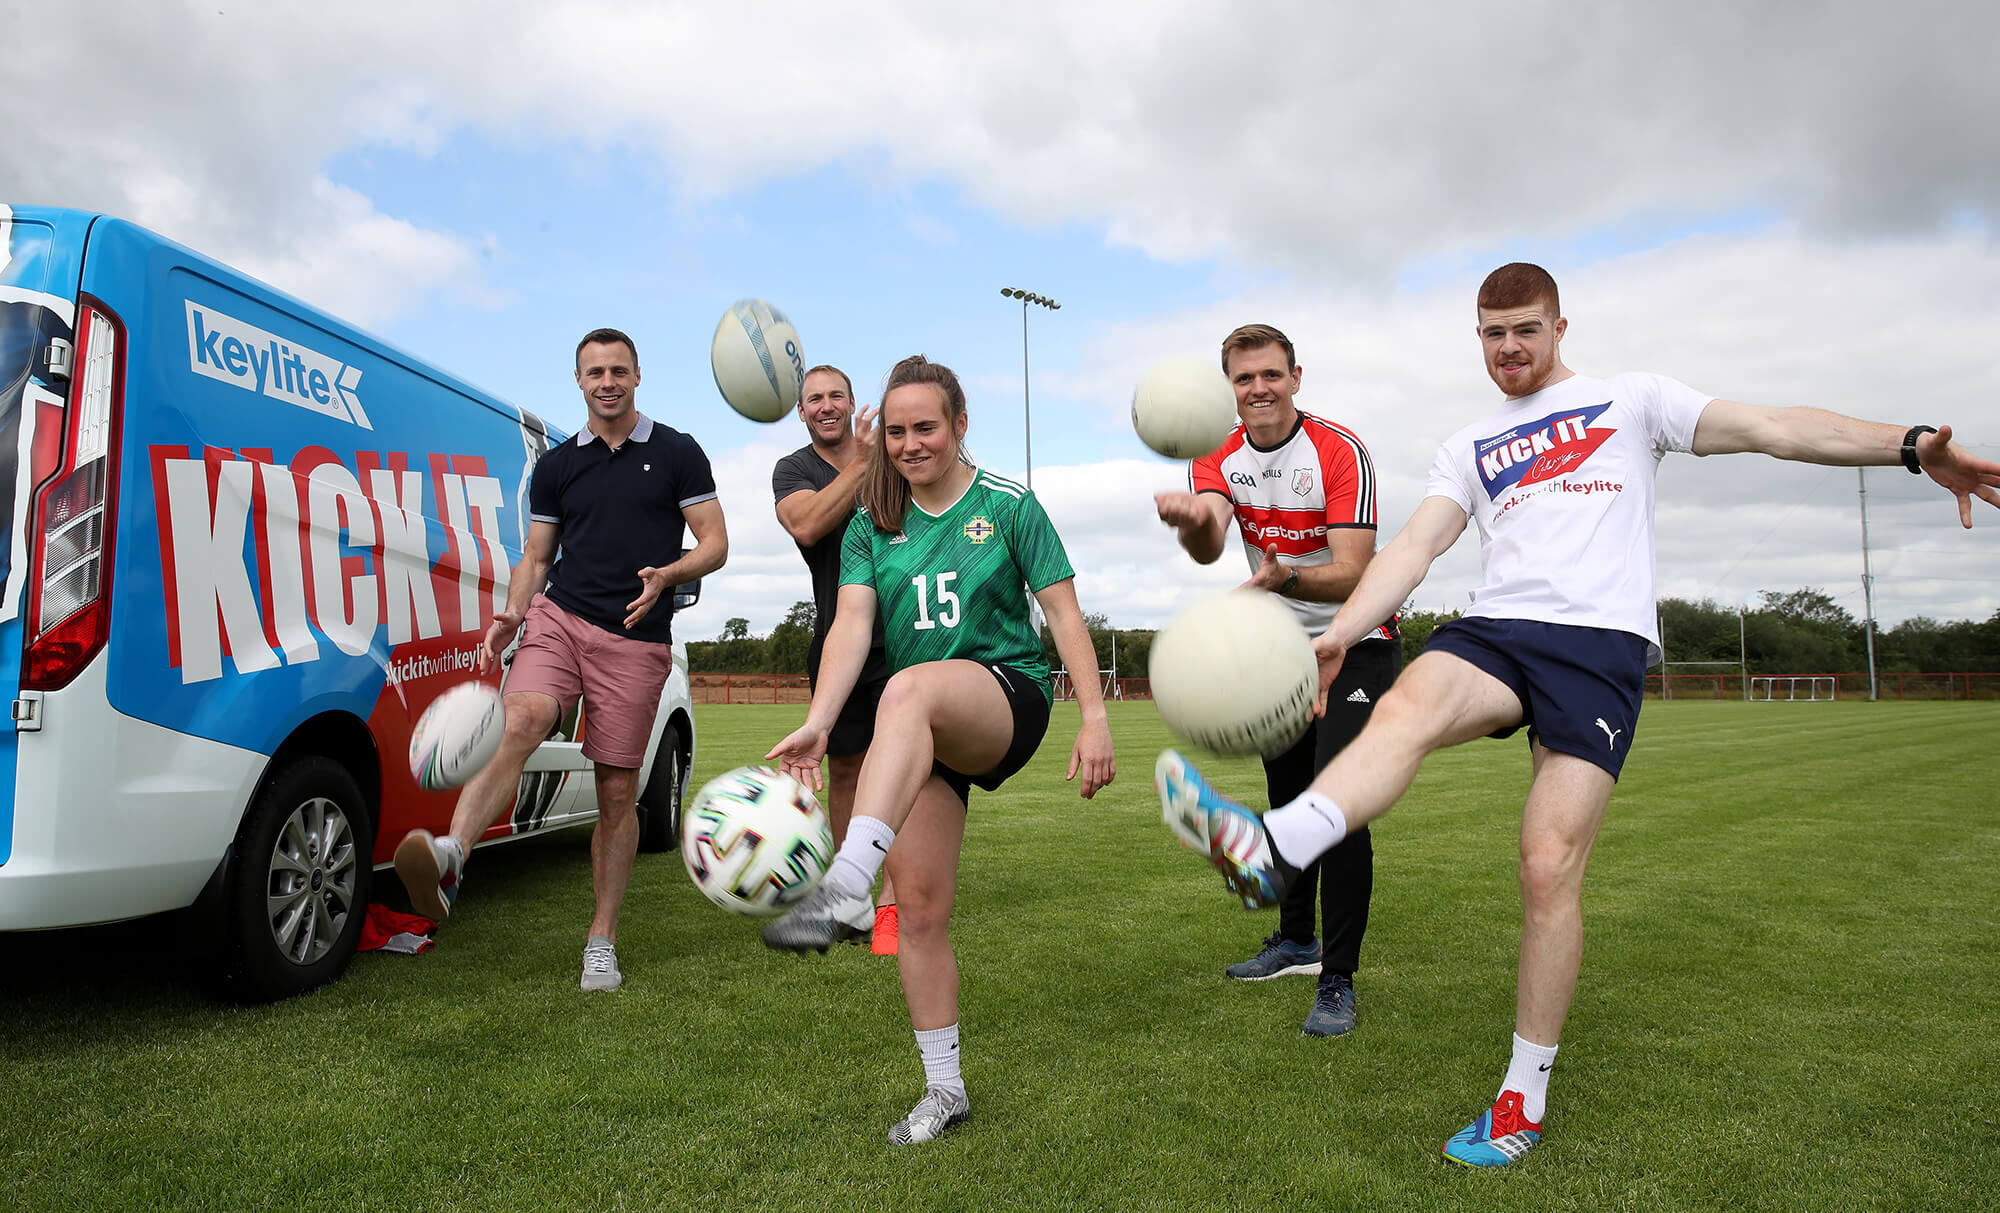 Join some of Ireland's biggest sports stars and #KickItWithKeylite